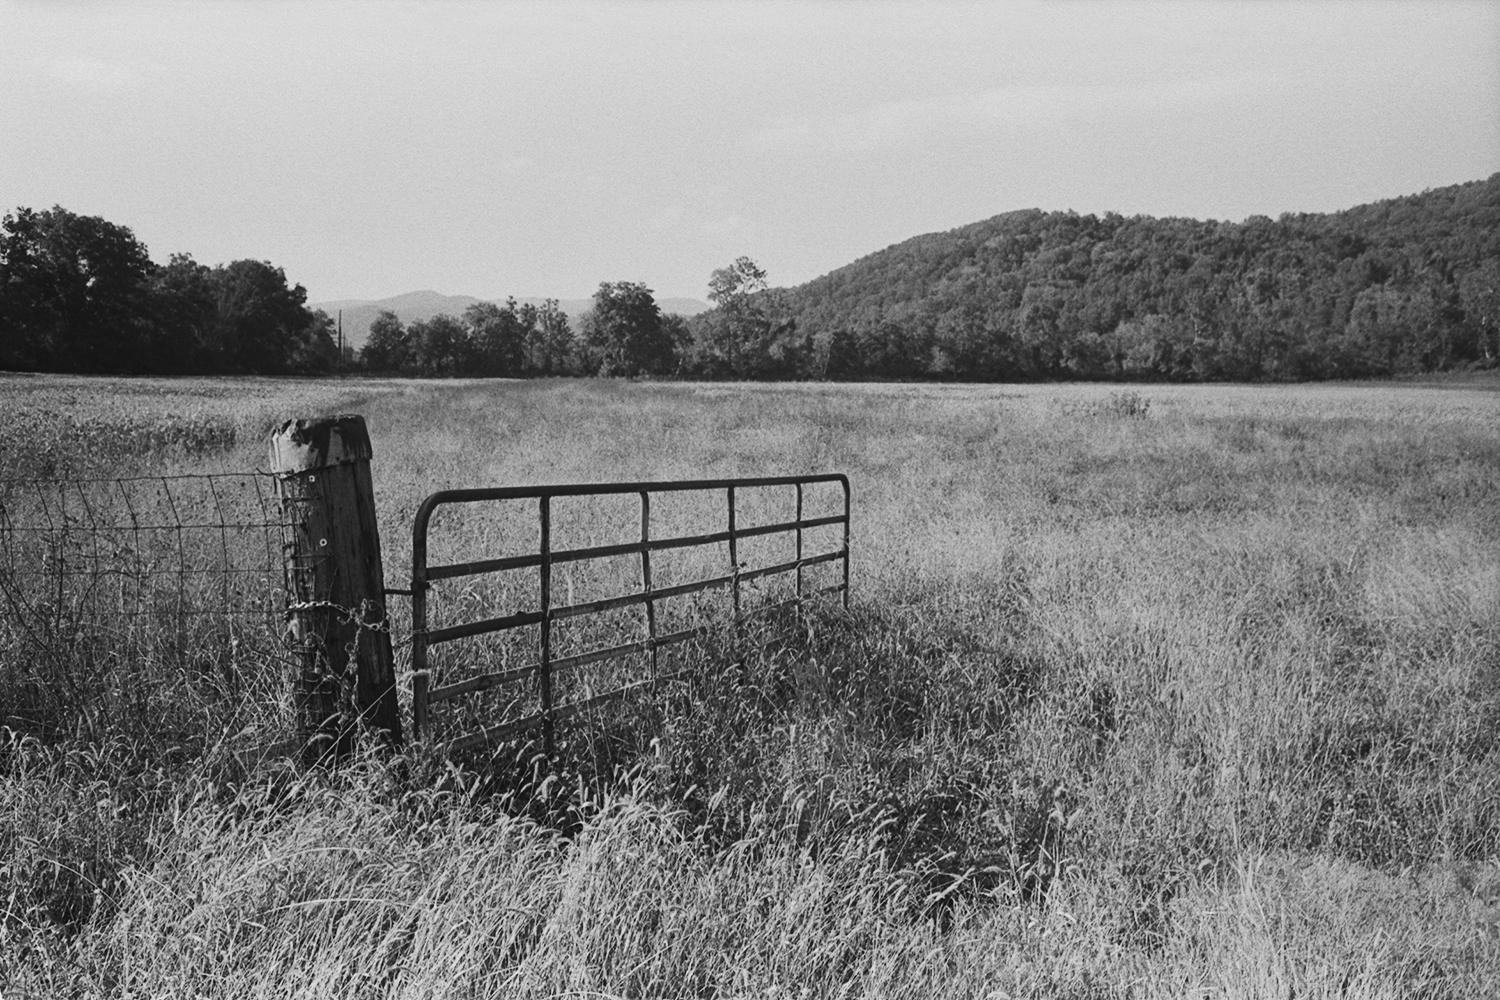 Pasture near Tornton River.  Rappahannock County, Virginia.  2014.